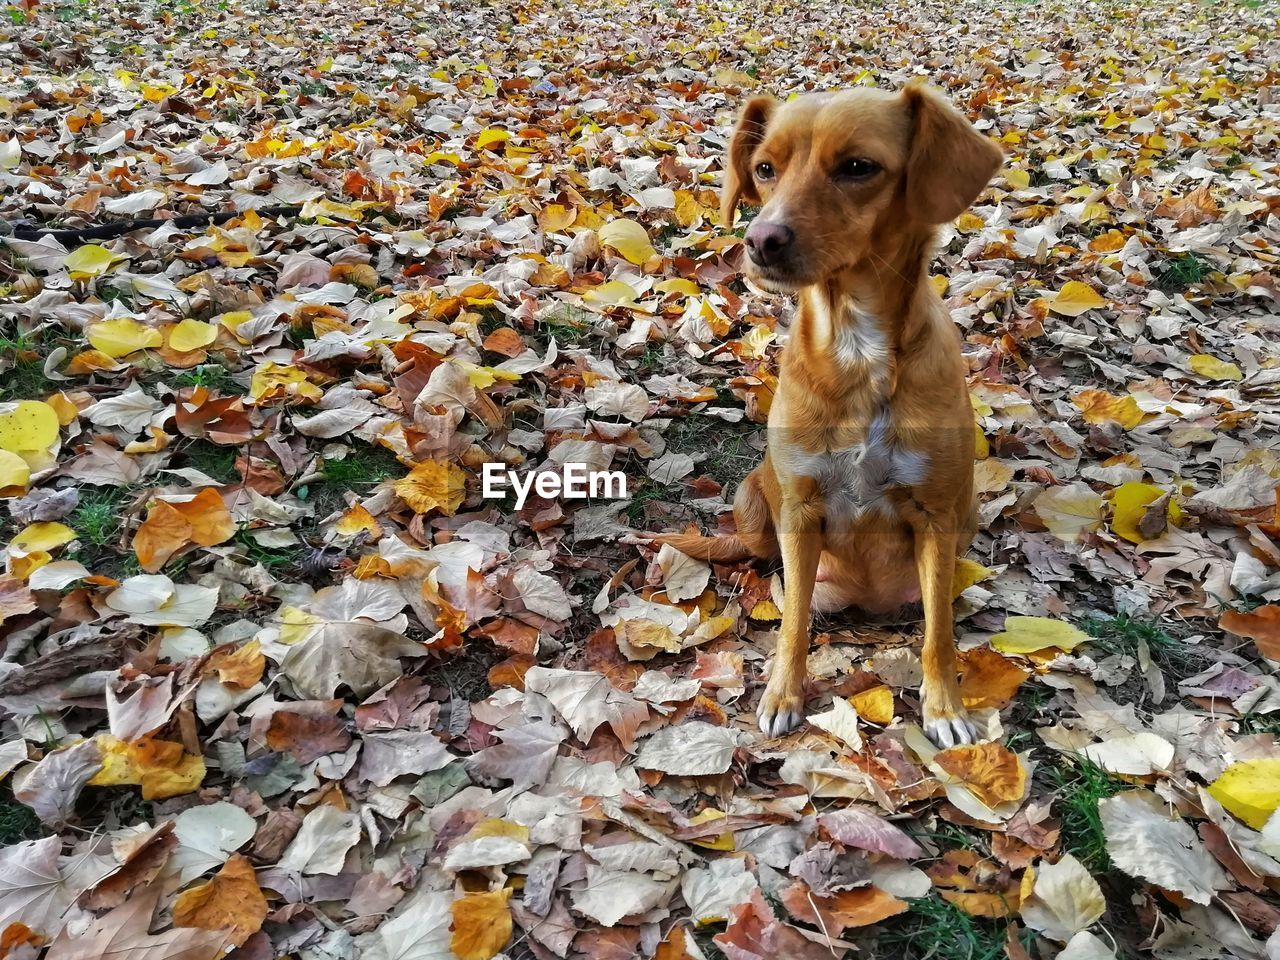 plant part, leaf, one animal, autumn, canine, mammal, animal themes, dog, animal, change, pets, leaves, domestic, domestic animals, nature, field, dry, day, no people, vertebrate, outdoors